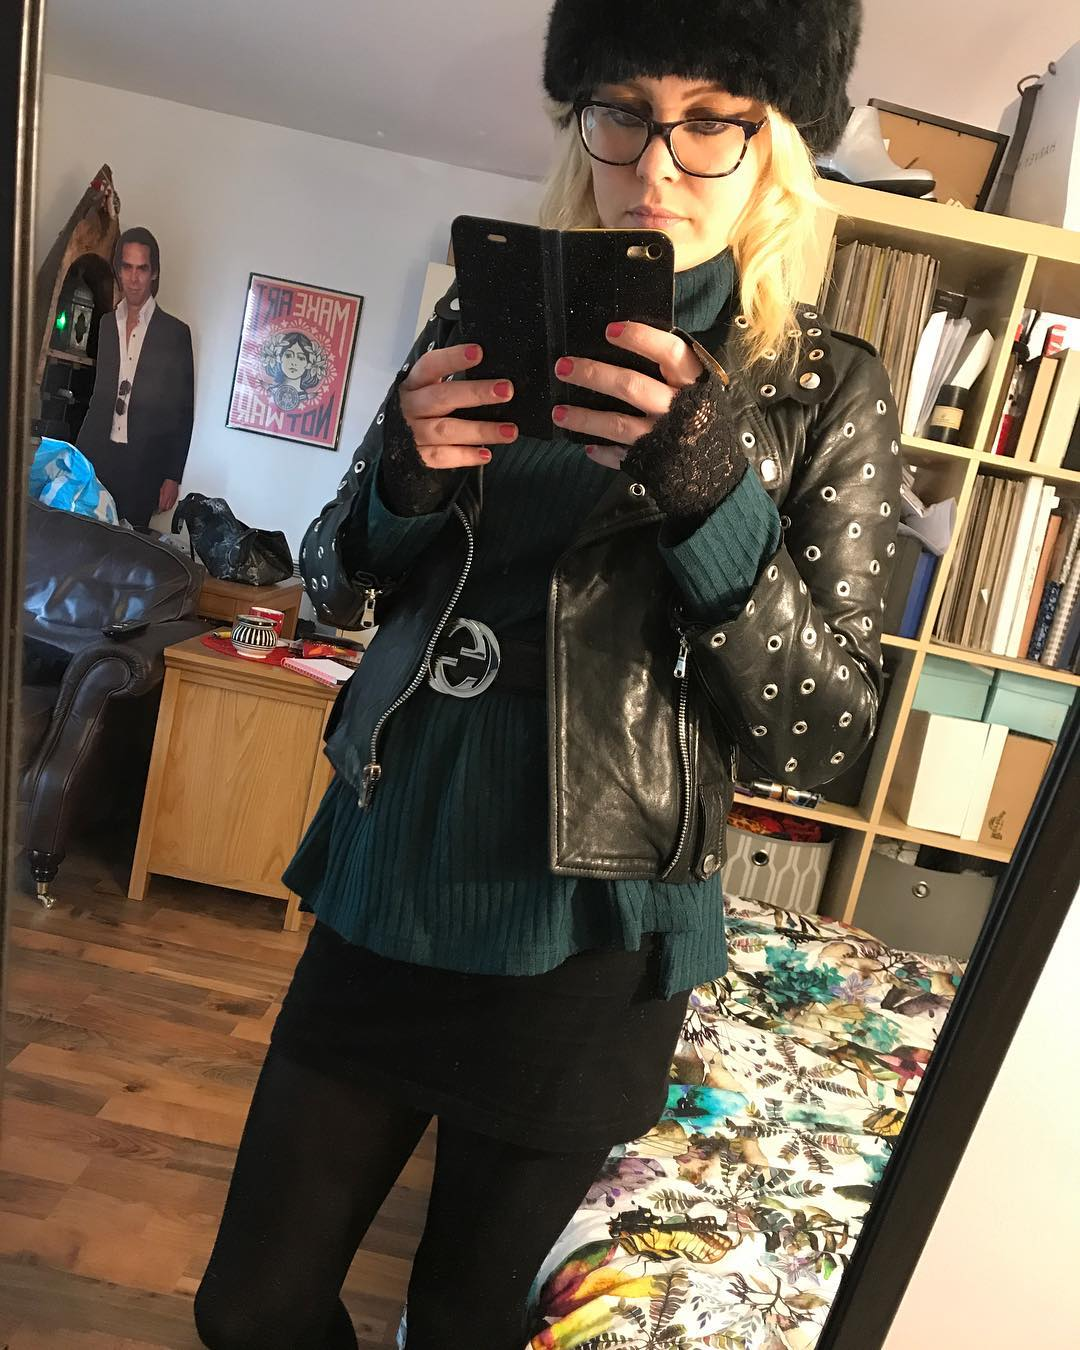 Teal Ribbed Sweater With Jeans And Short Leather Jacket